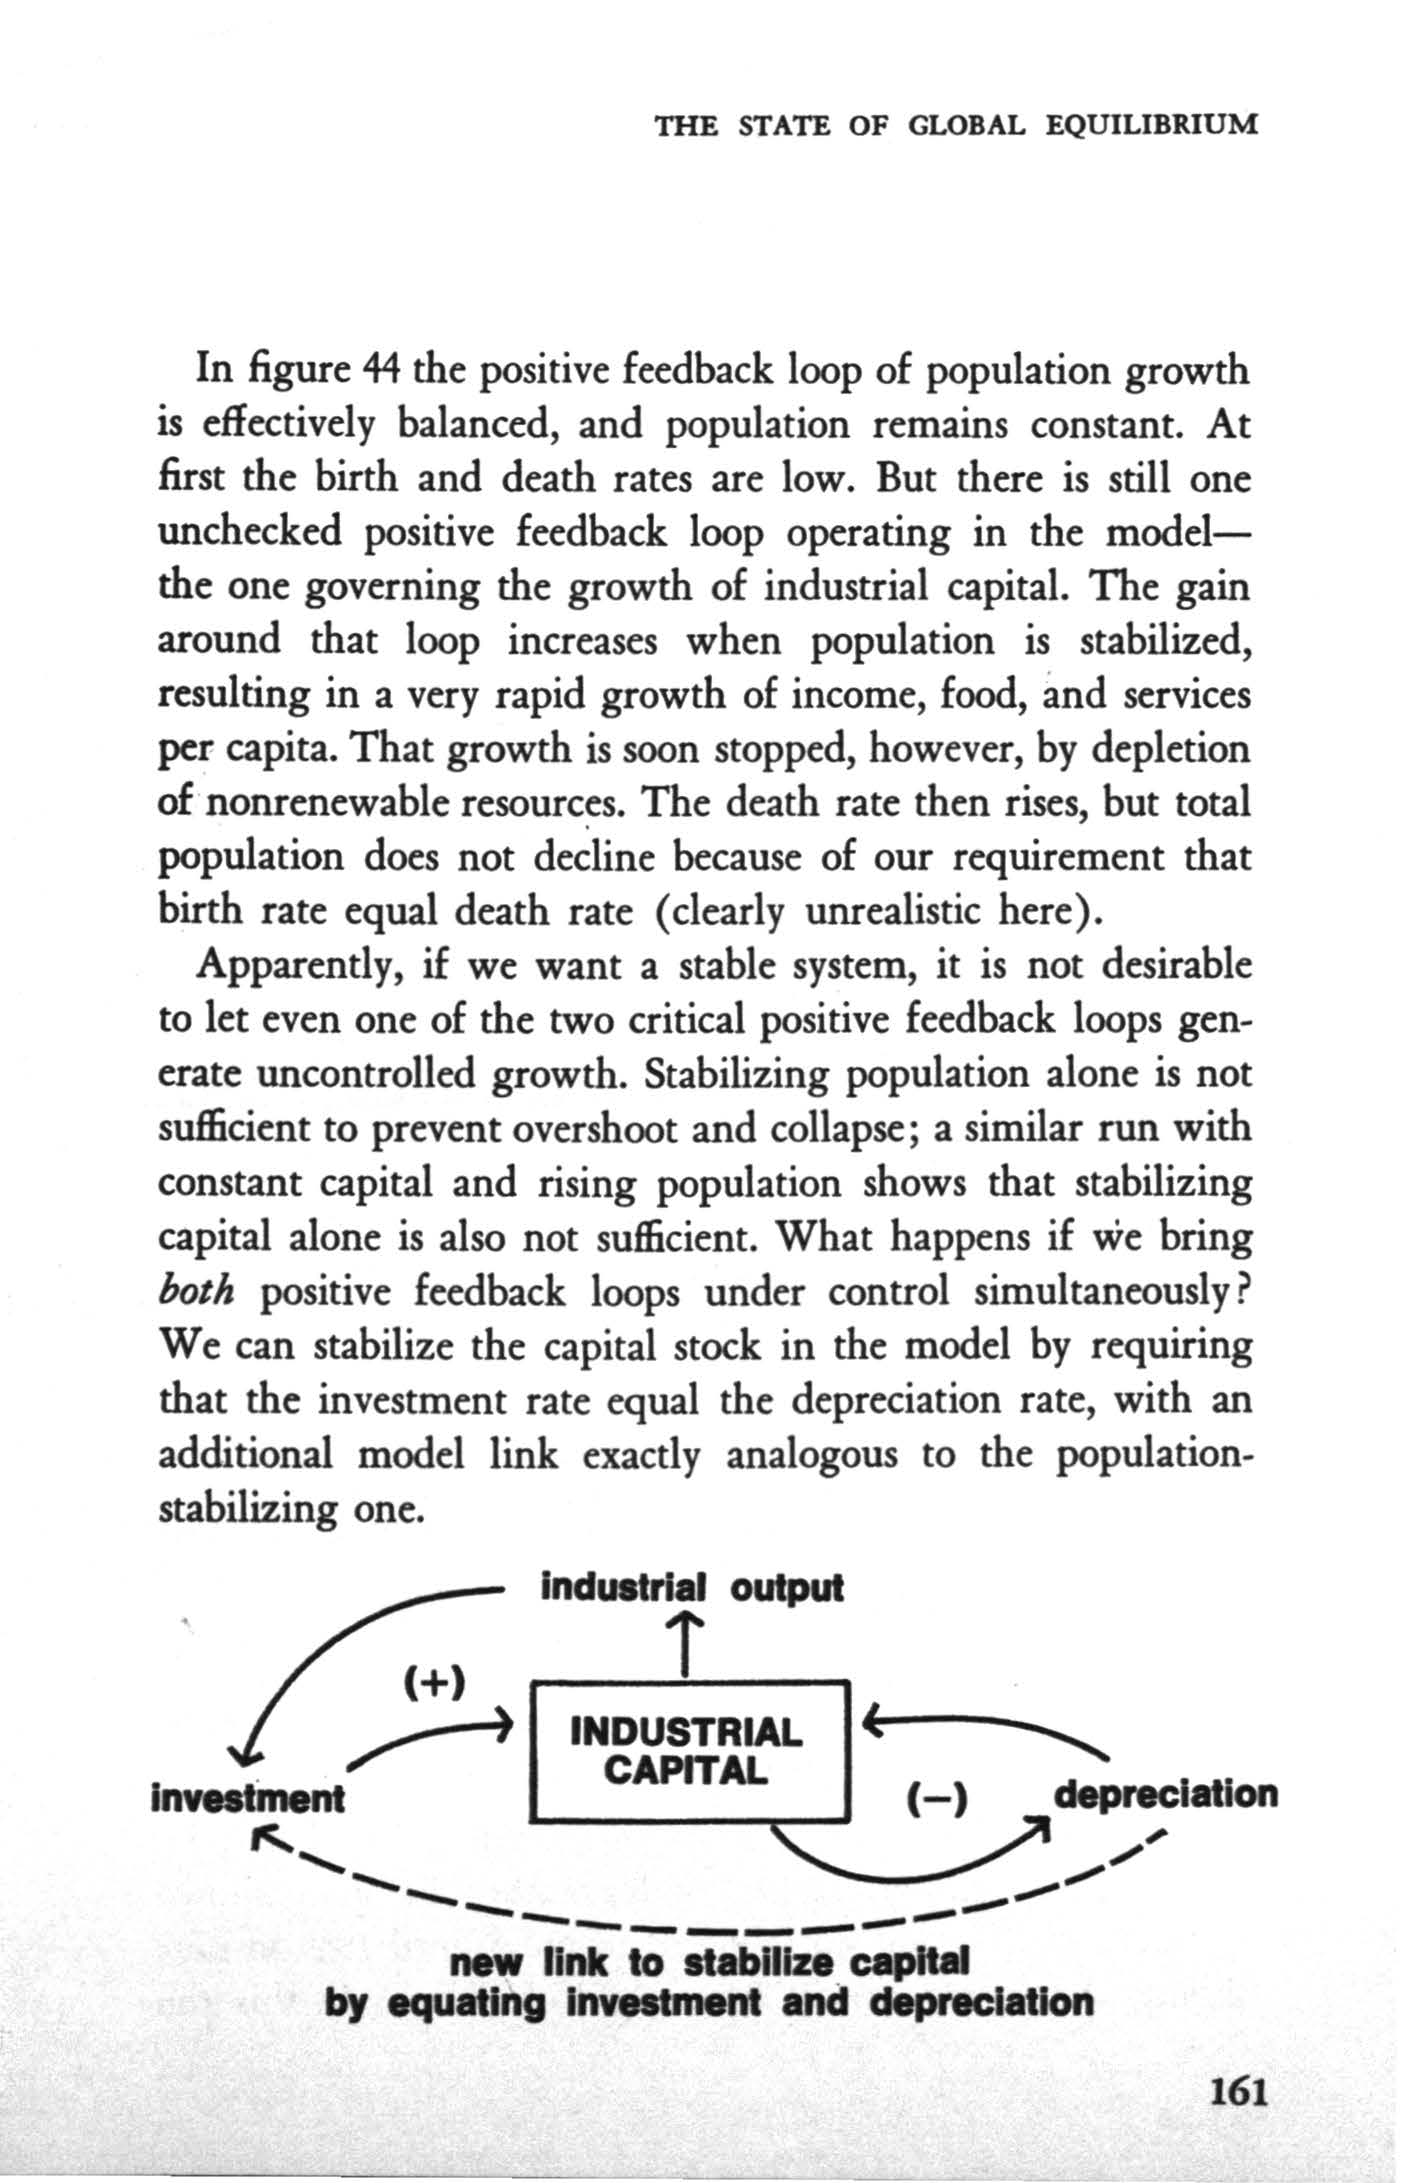 THE STATE OF GLOBAL EQULBRUM n figure 44 the positive feedback loop of population growth is effectively balanced, and population remains constant. At first the birth and death rates are low.